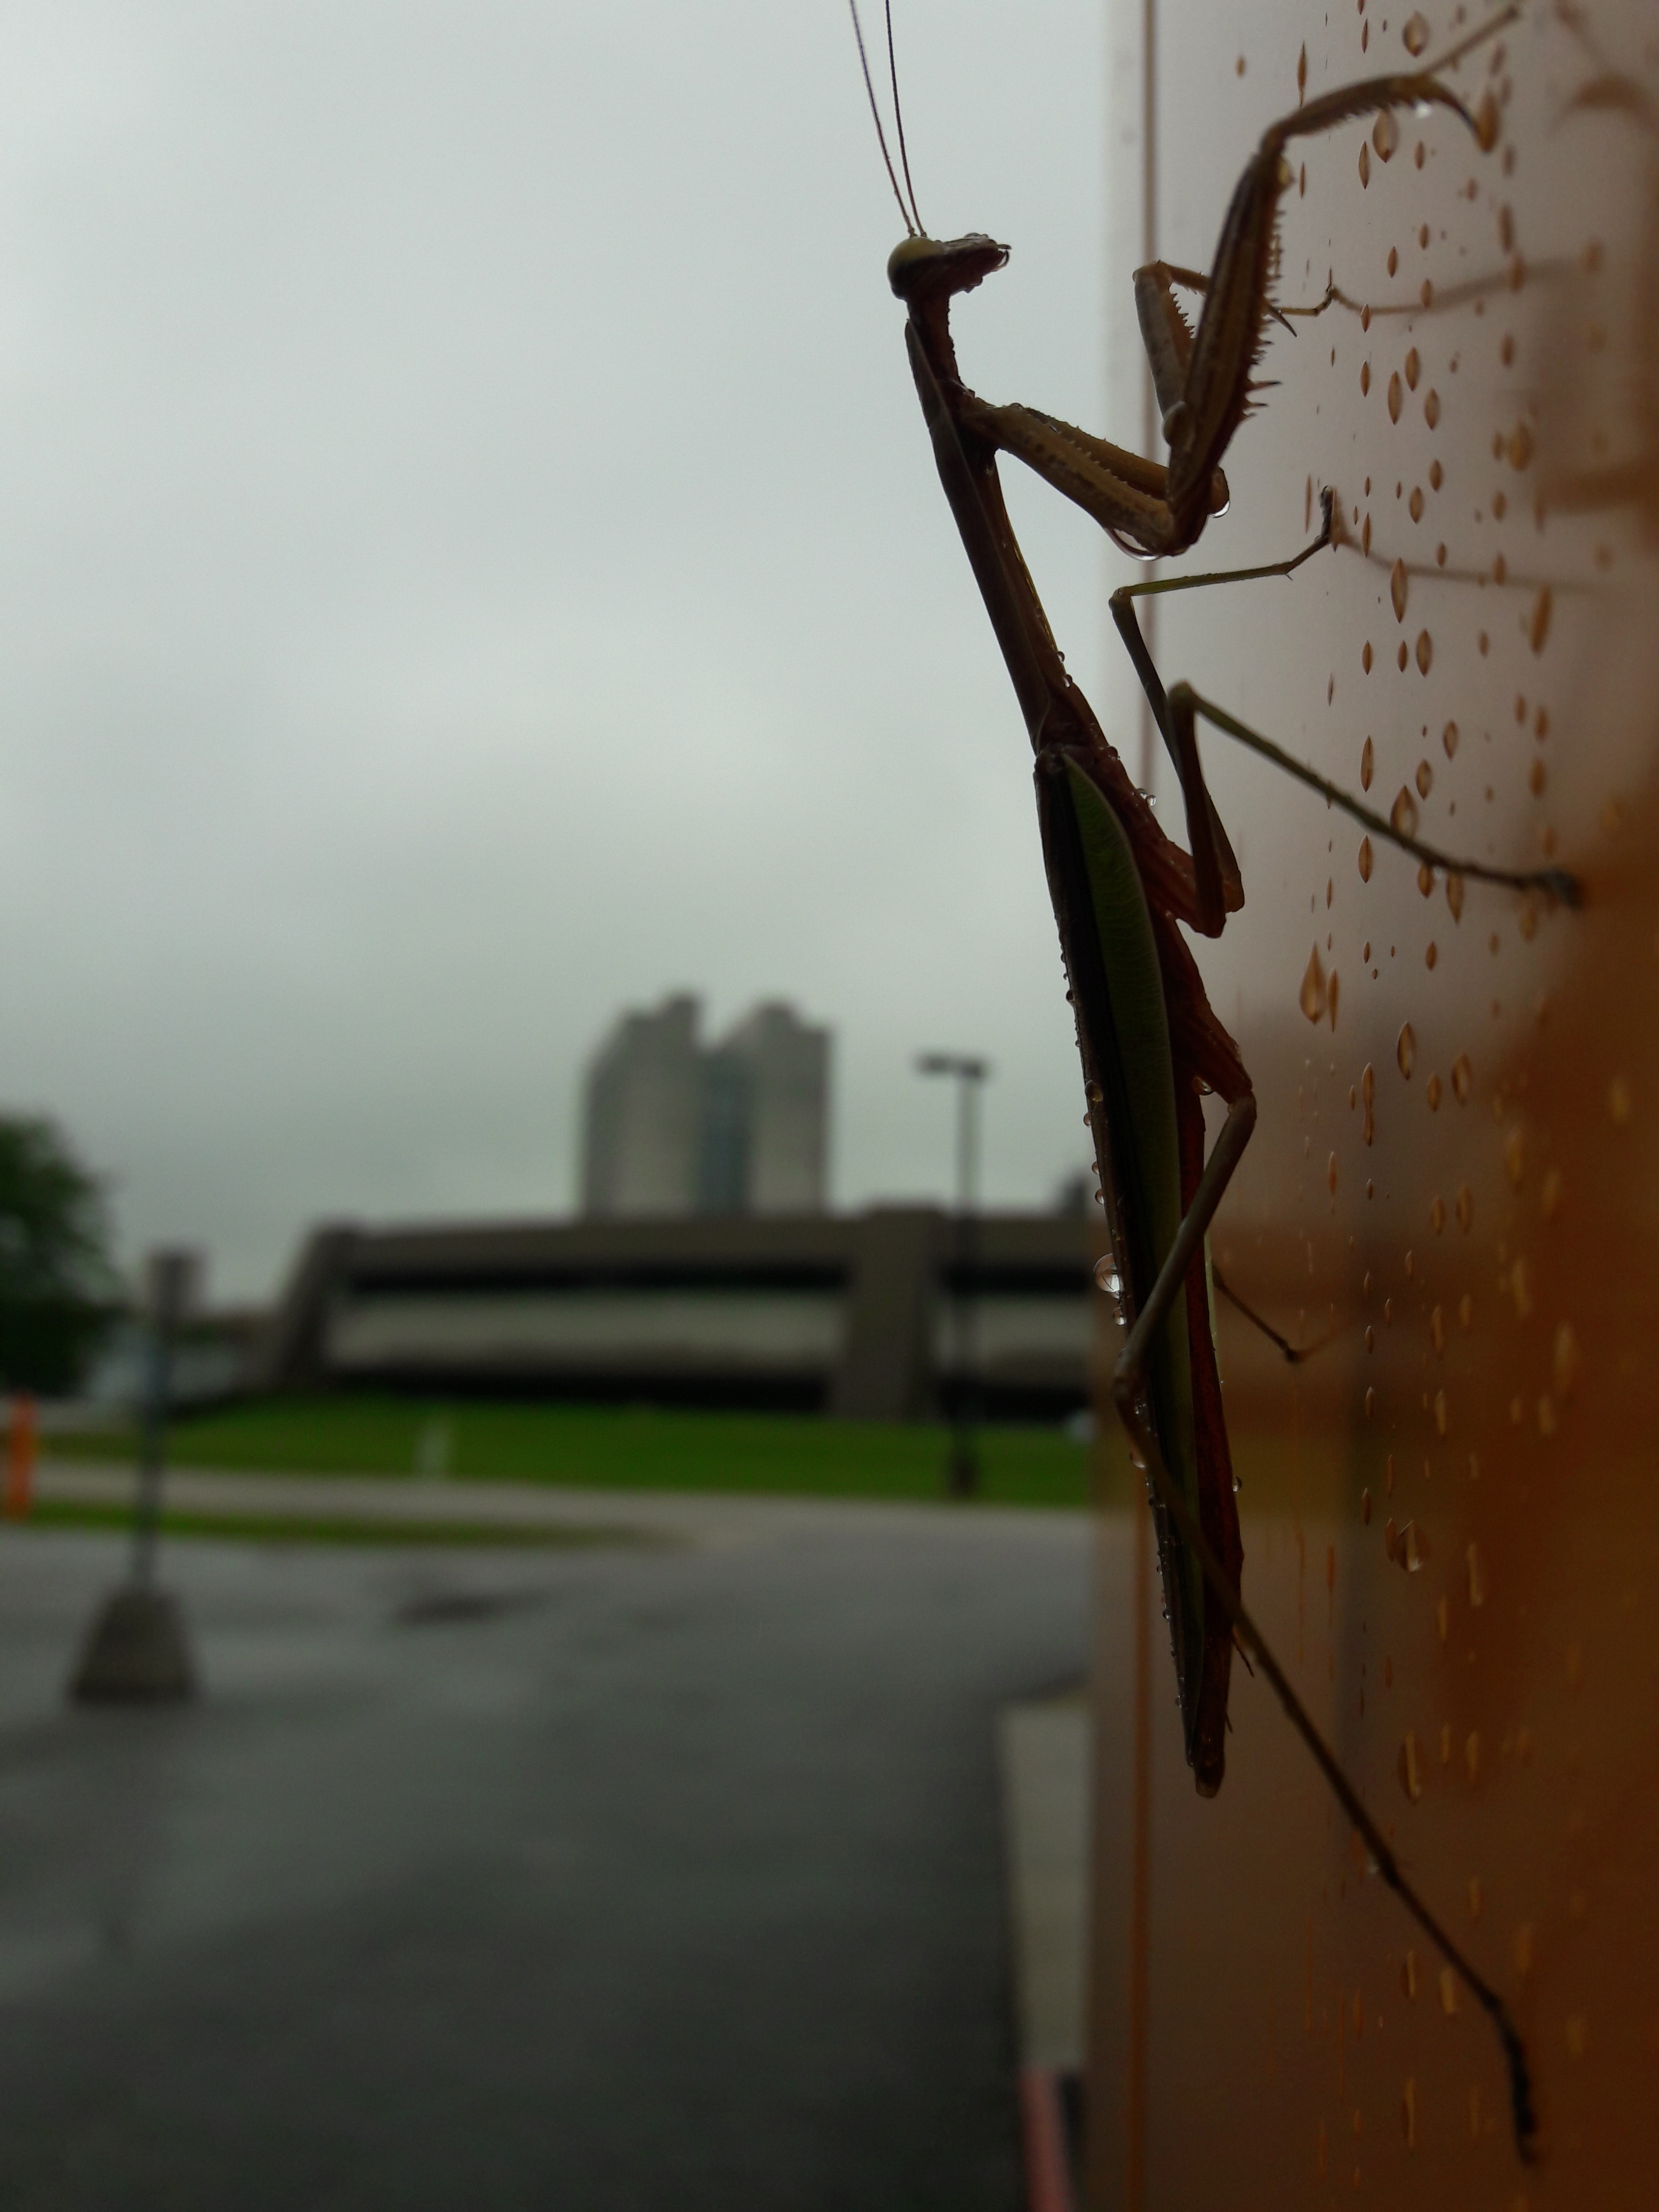 A praying mantis climbs the MC1 Building on a rainy day. Photo: Skyler Sherwin